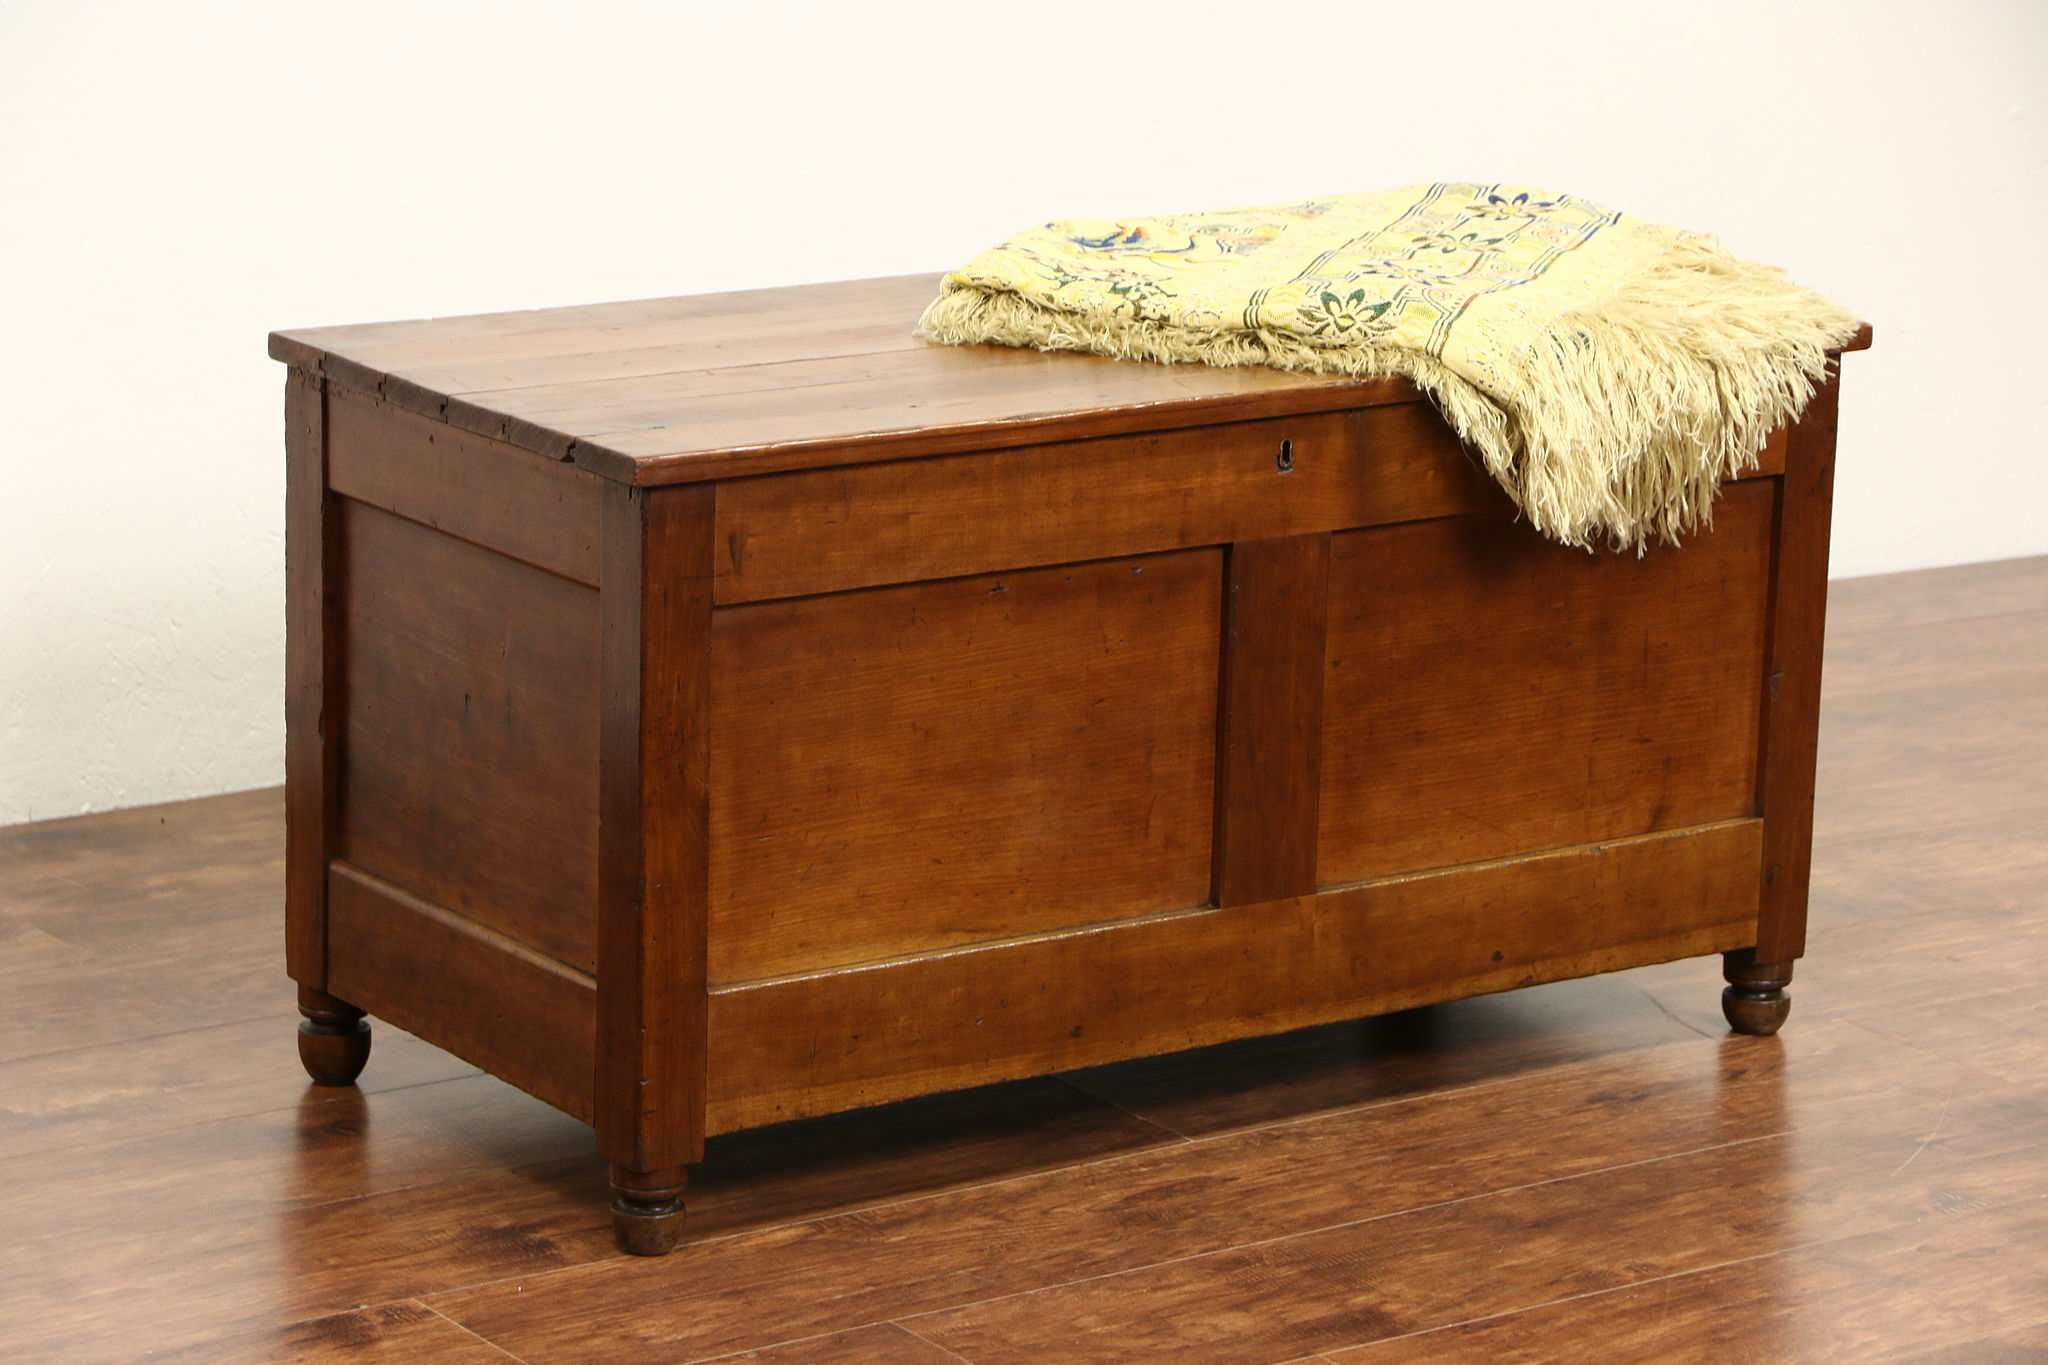 SOLD Country Cherry 1900 Antique Trunk Chest or Coffee Table